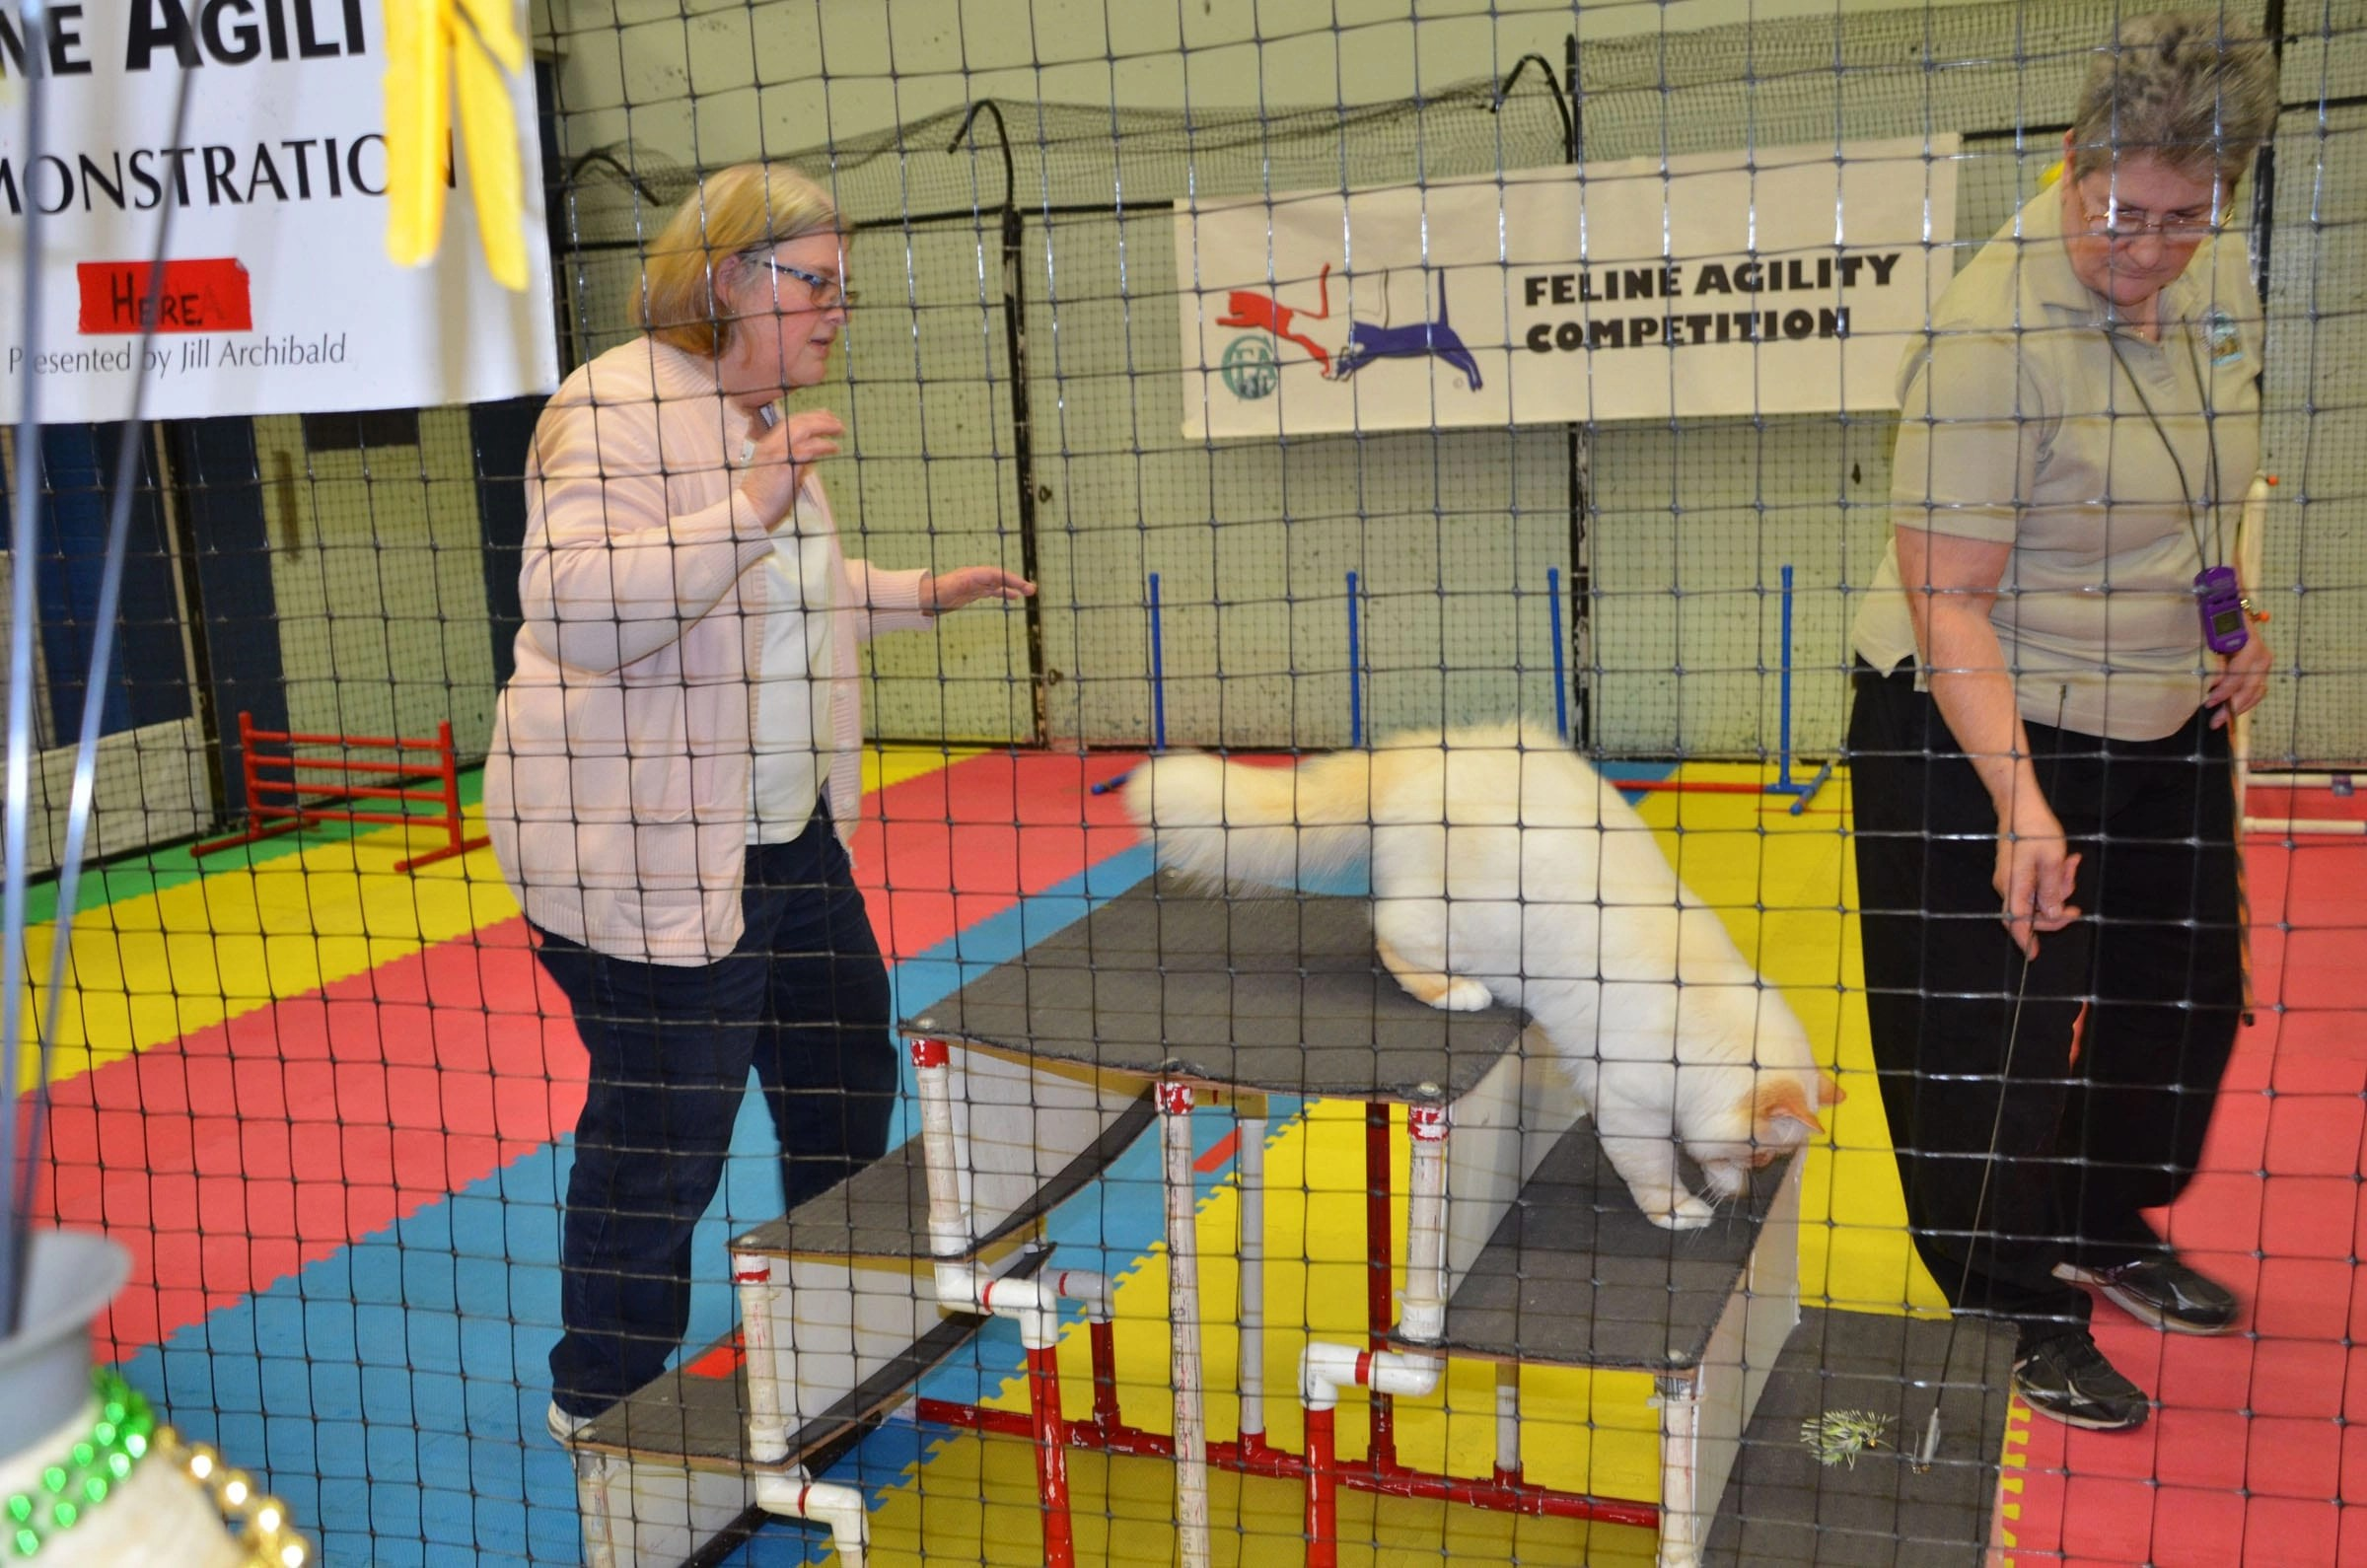 Can cats do tricks? Feline agility competitions prove they can.